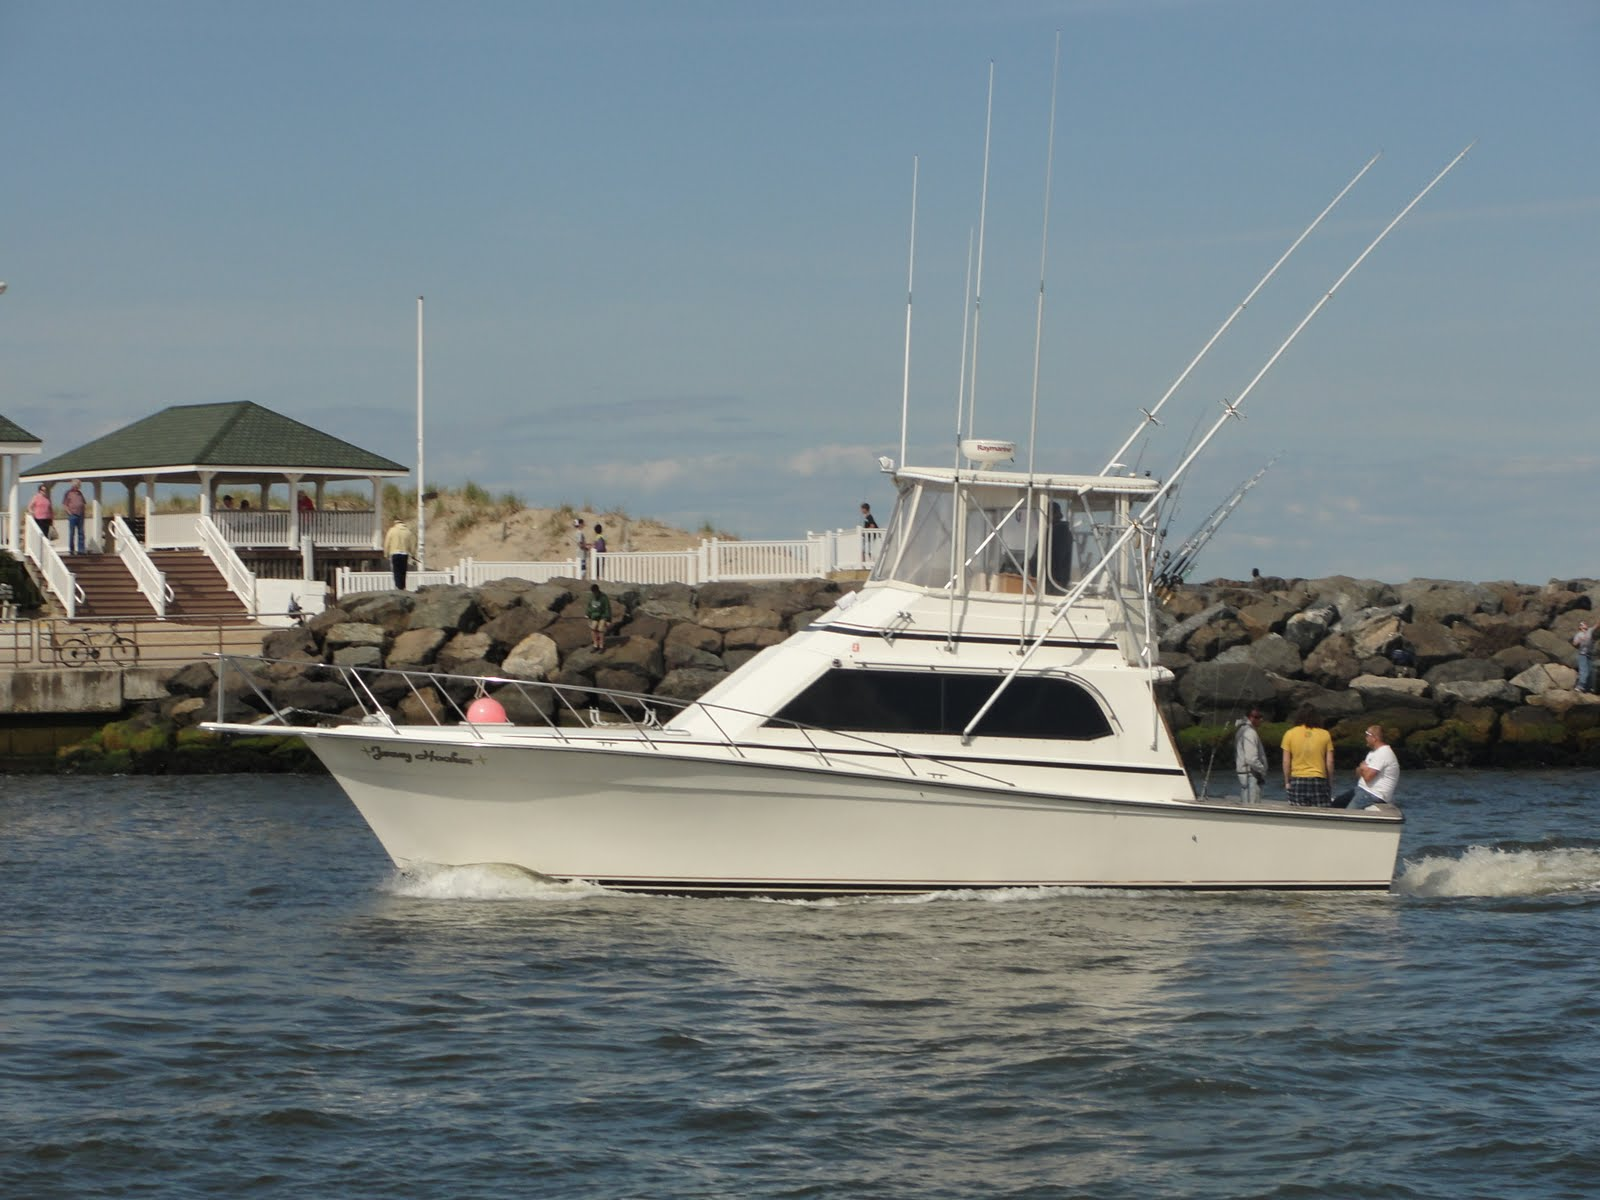 New jersey fishing charters may 2010 for Fishing charters nj